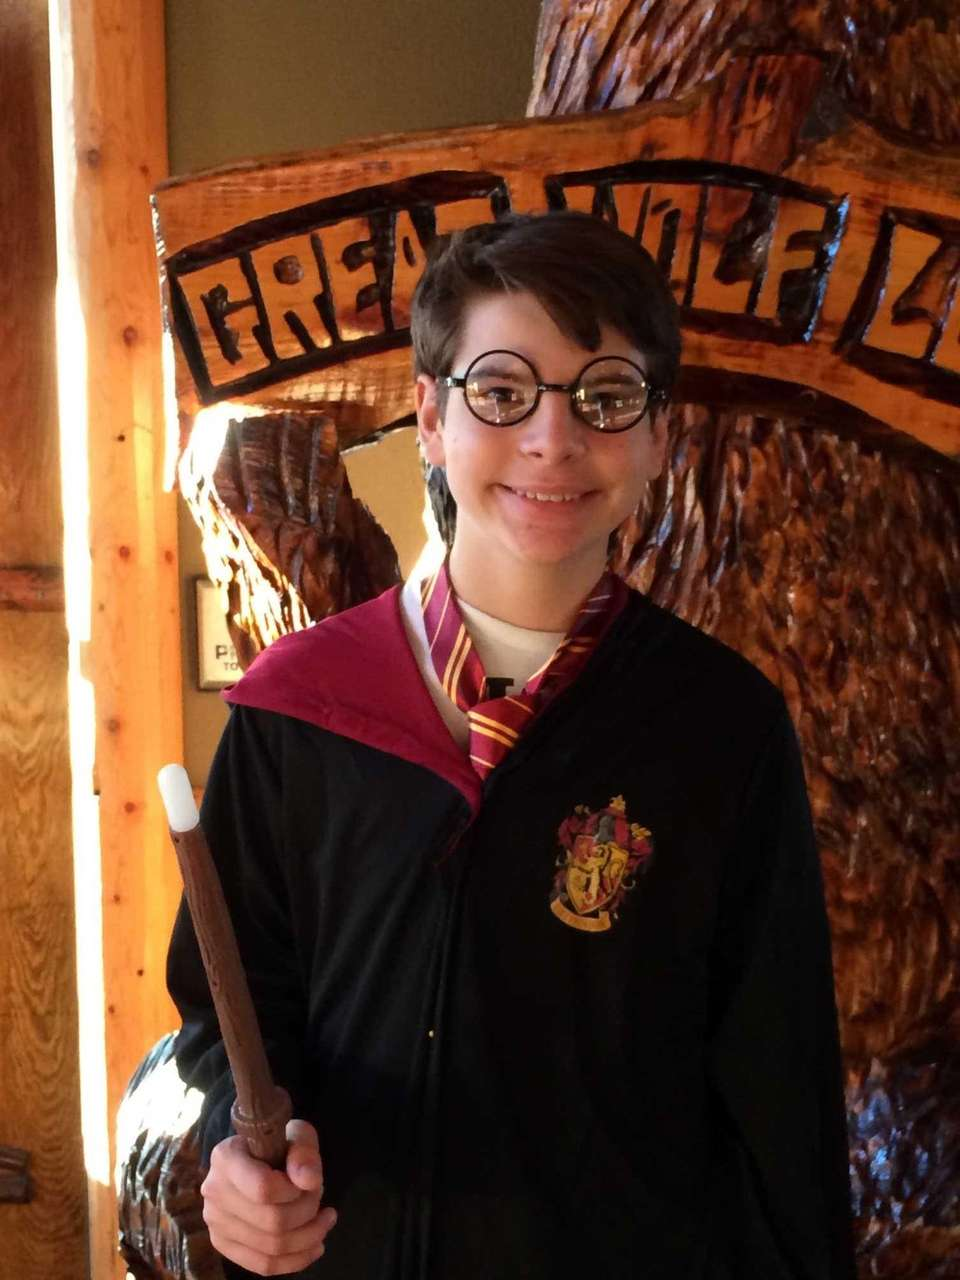 My son dressed as Harry Potter for the